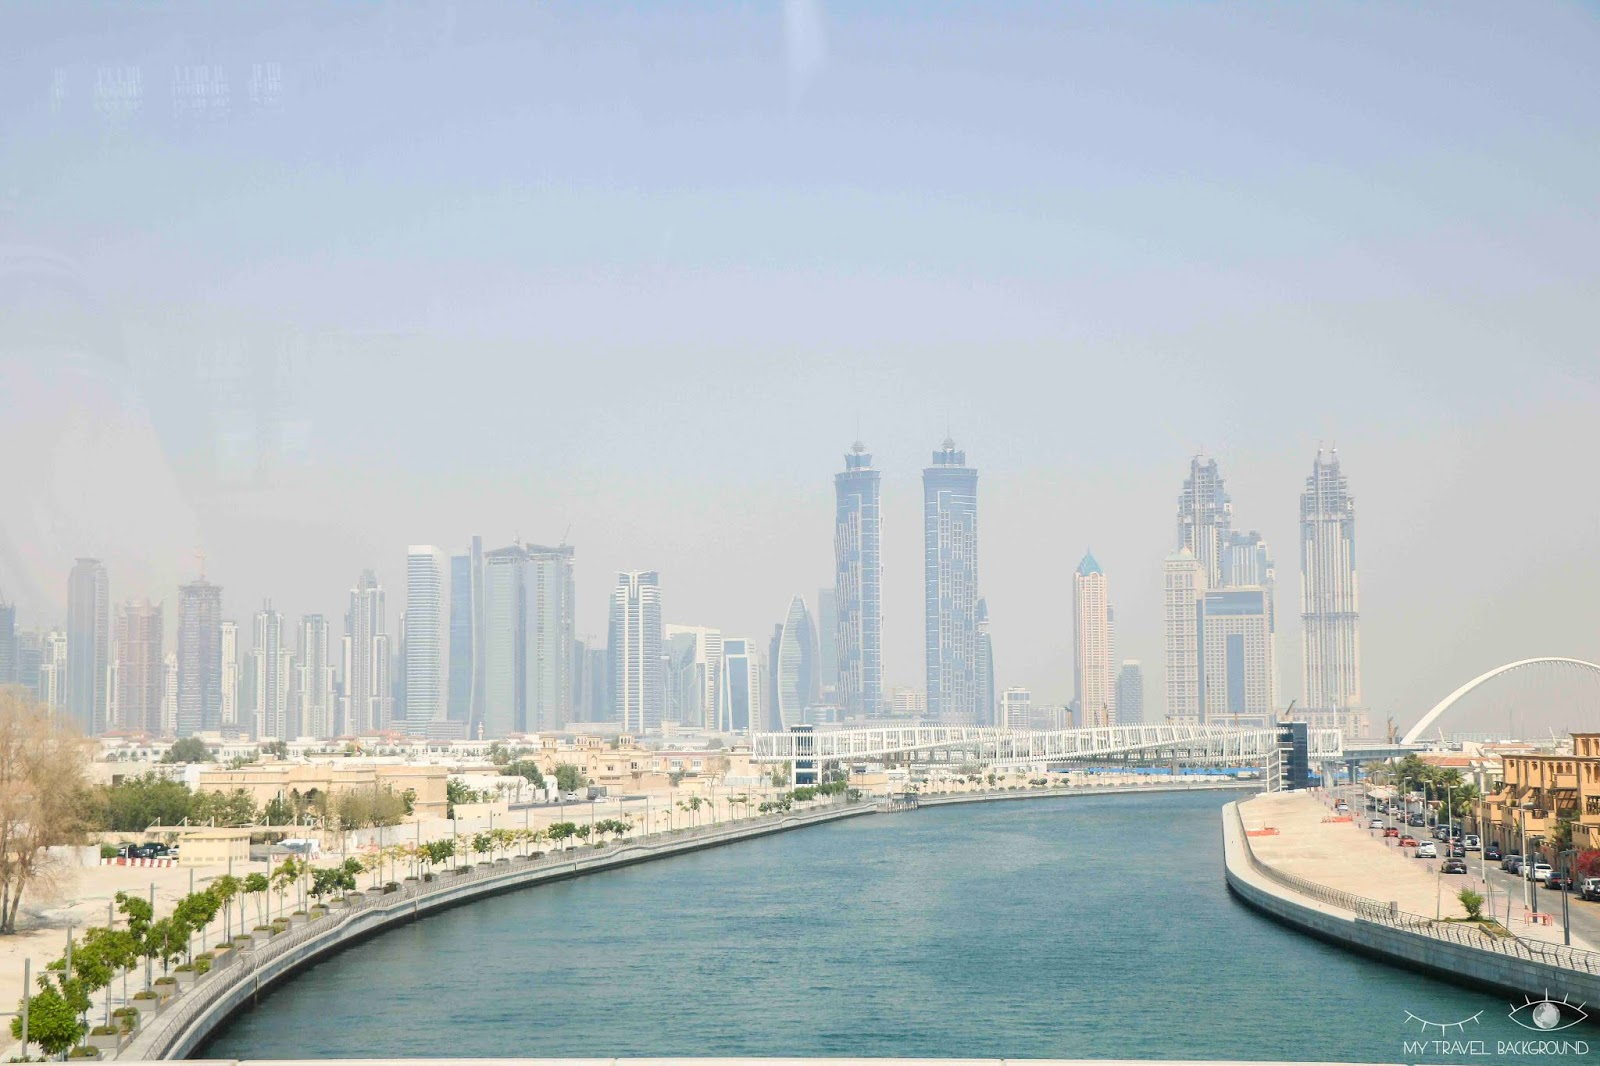 My Travel Background : Escale à Dubaï, que visiter en 3 jours ? - Vue sur Dubaï